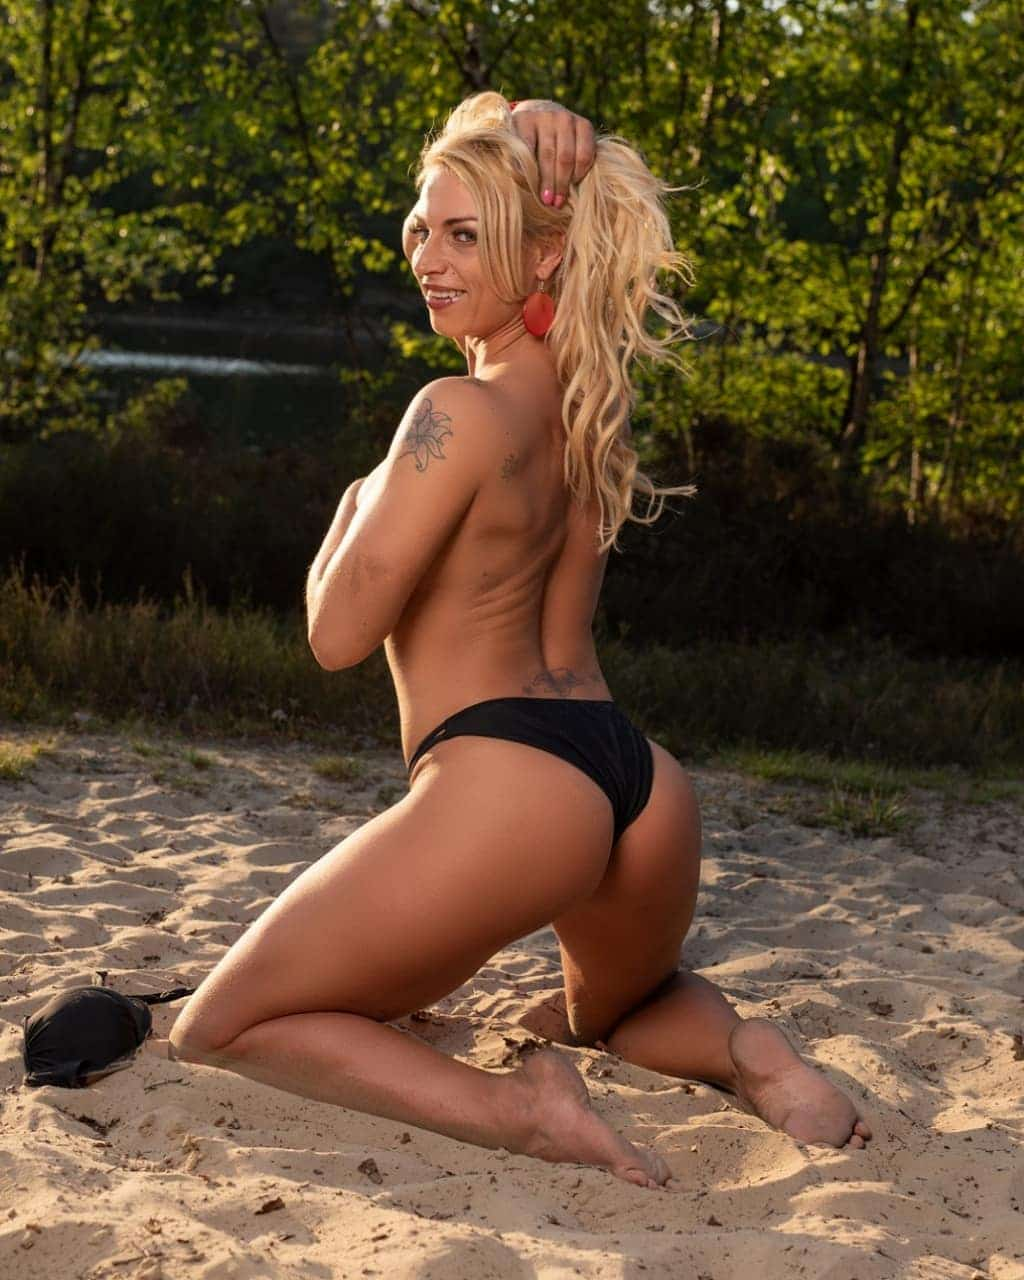 Beautiful Dutch fitness model Willeke Bartels @willekebartels.fitmodel kneeled in the beach sand smiling hith one arm up showing her bare feet and hot sexy body